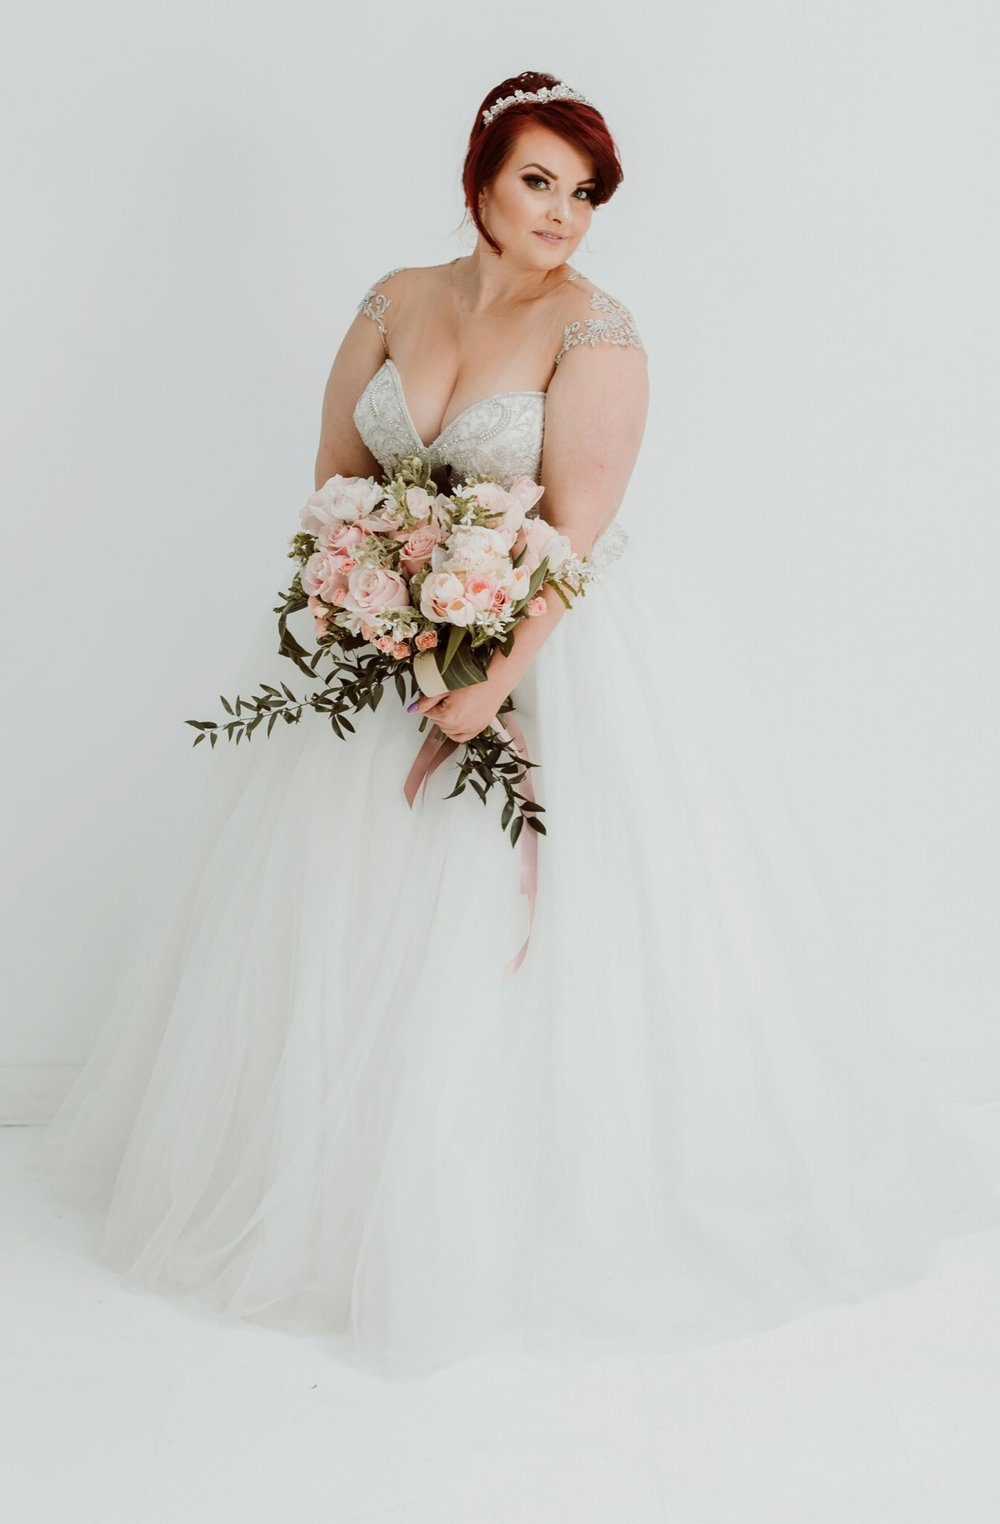 photo: blue Rose, Gown: uptown Bride